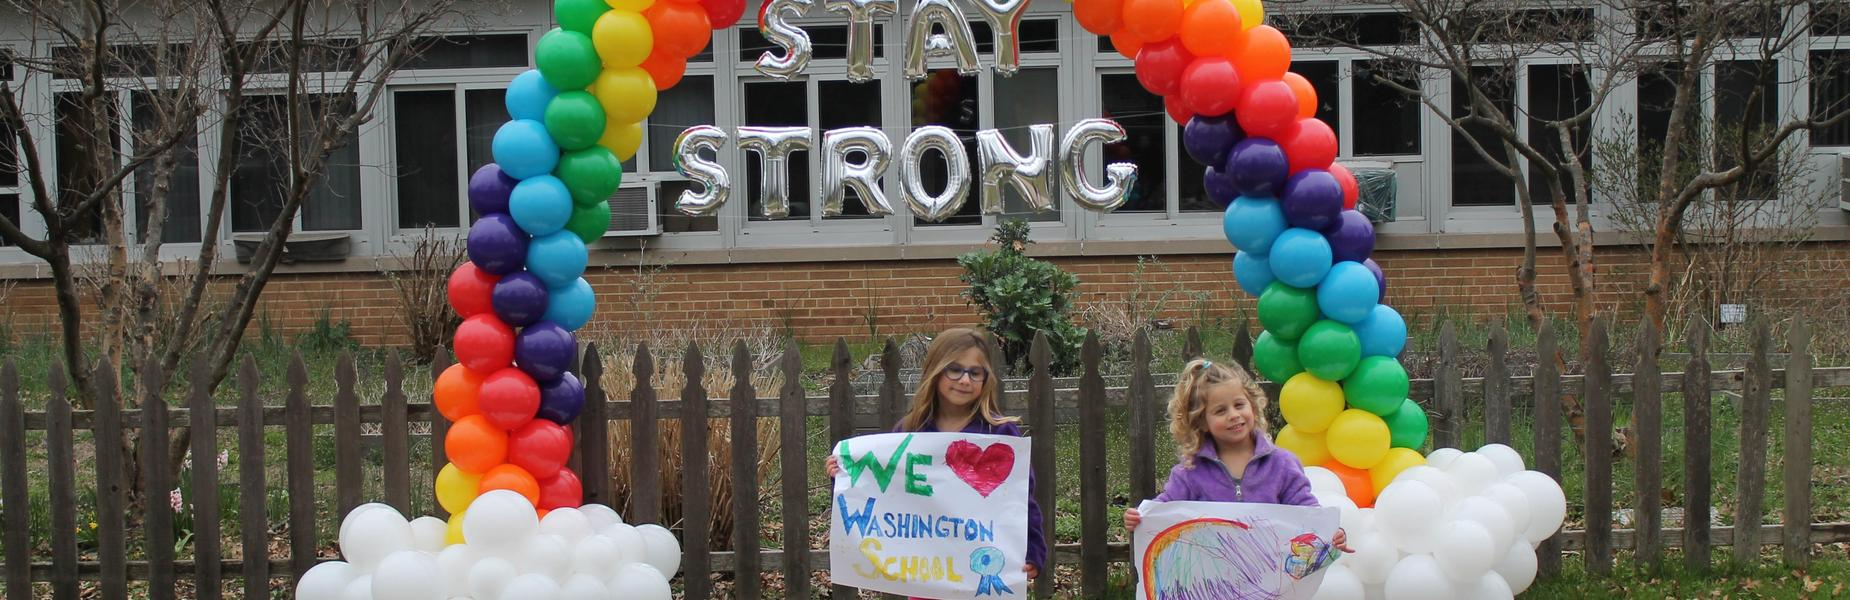 Photo of Washington School students holding signs in front of rainbow made of balloons.